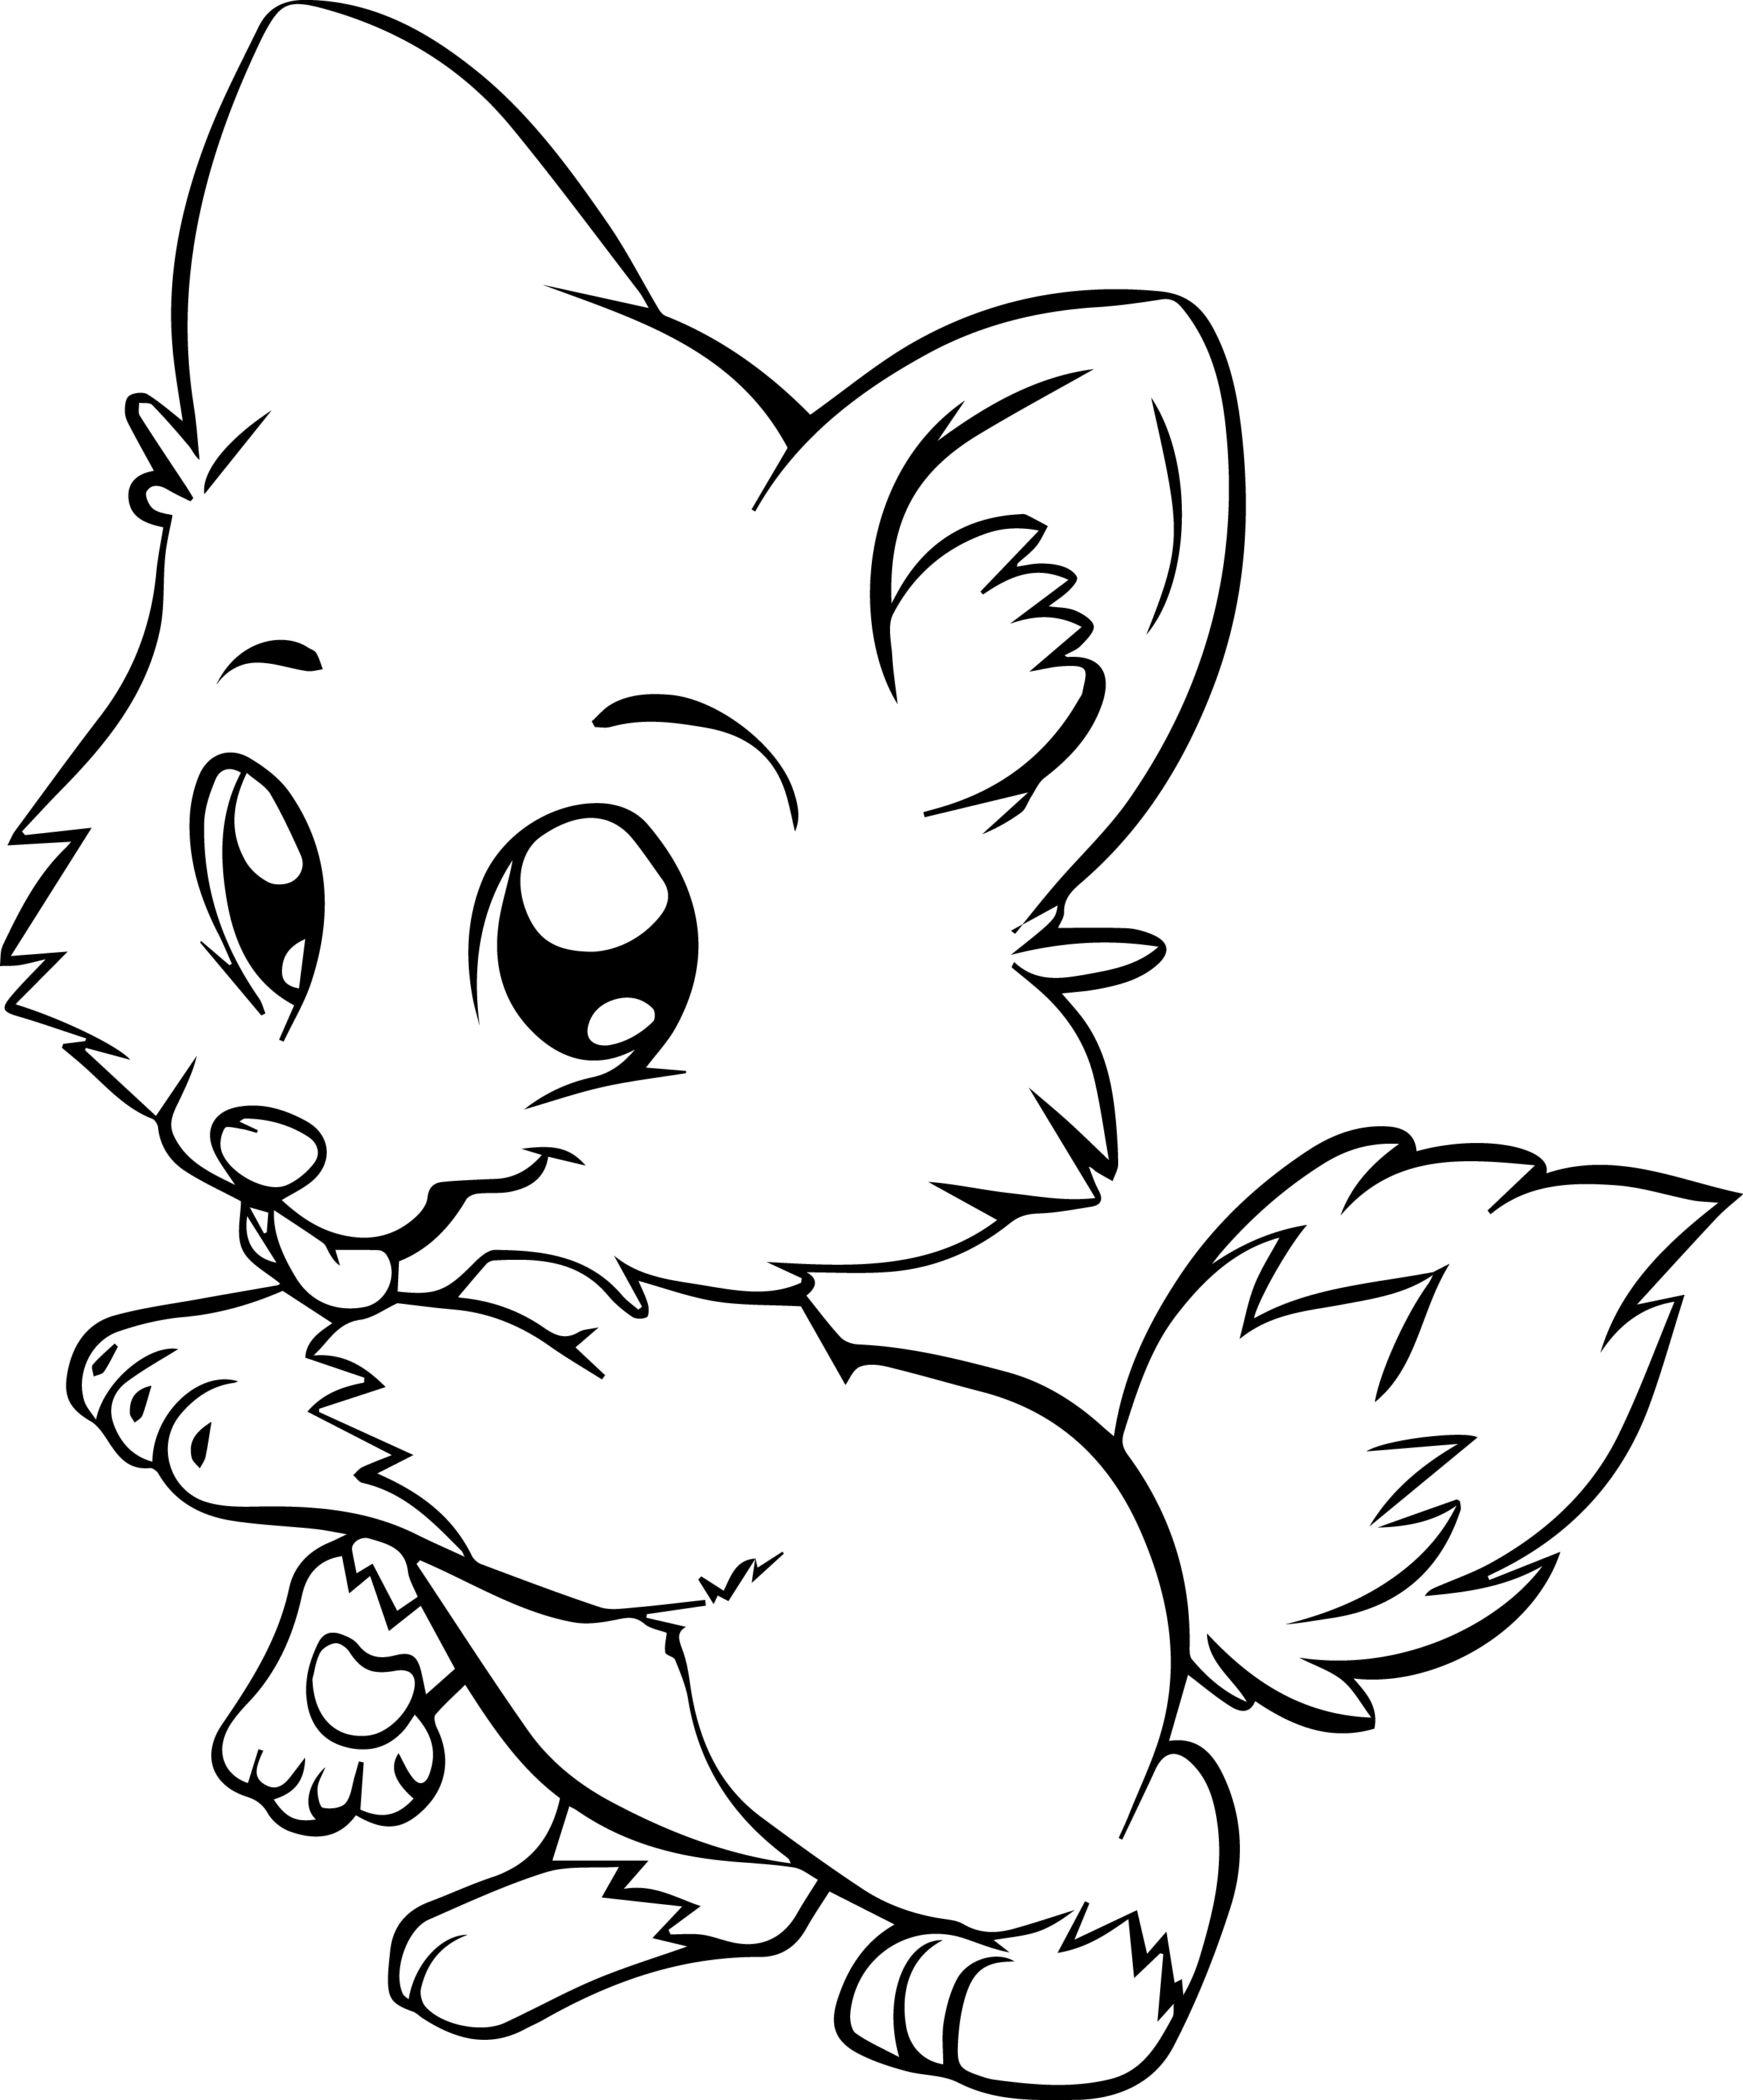 stuffed animal coloring pages stuffed animal coloring pages coloring stuffed pages animal